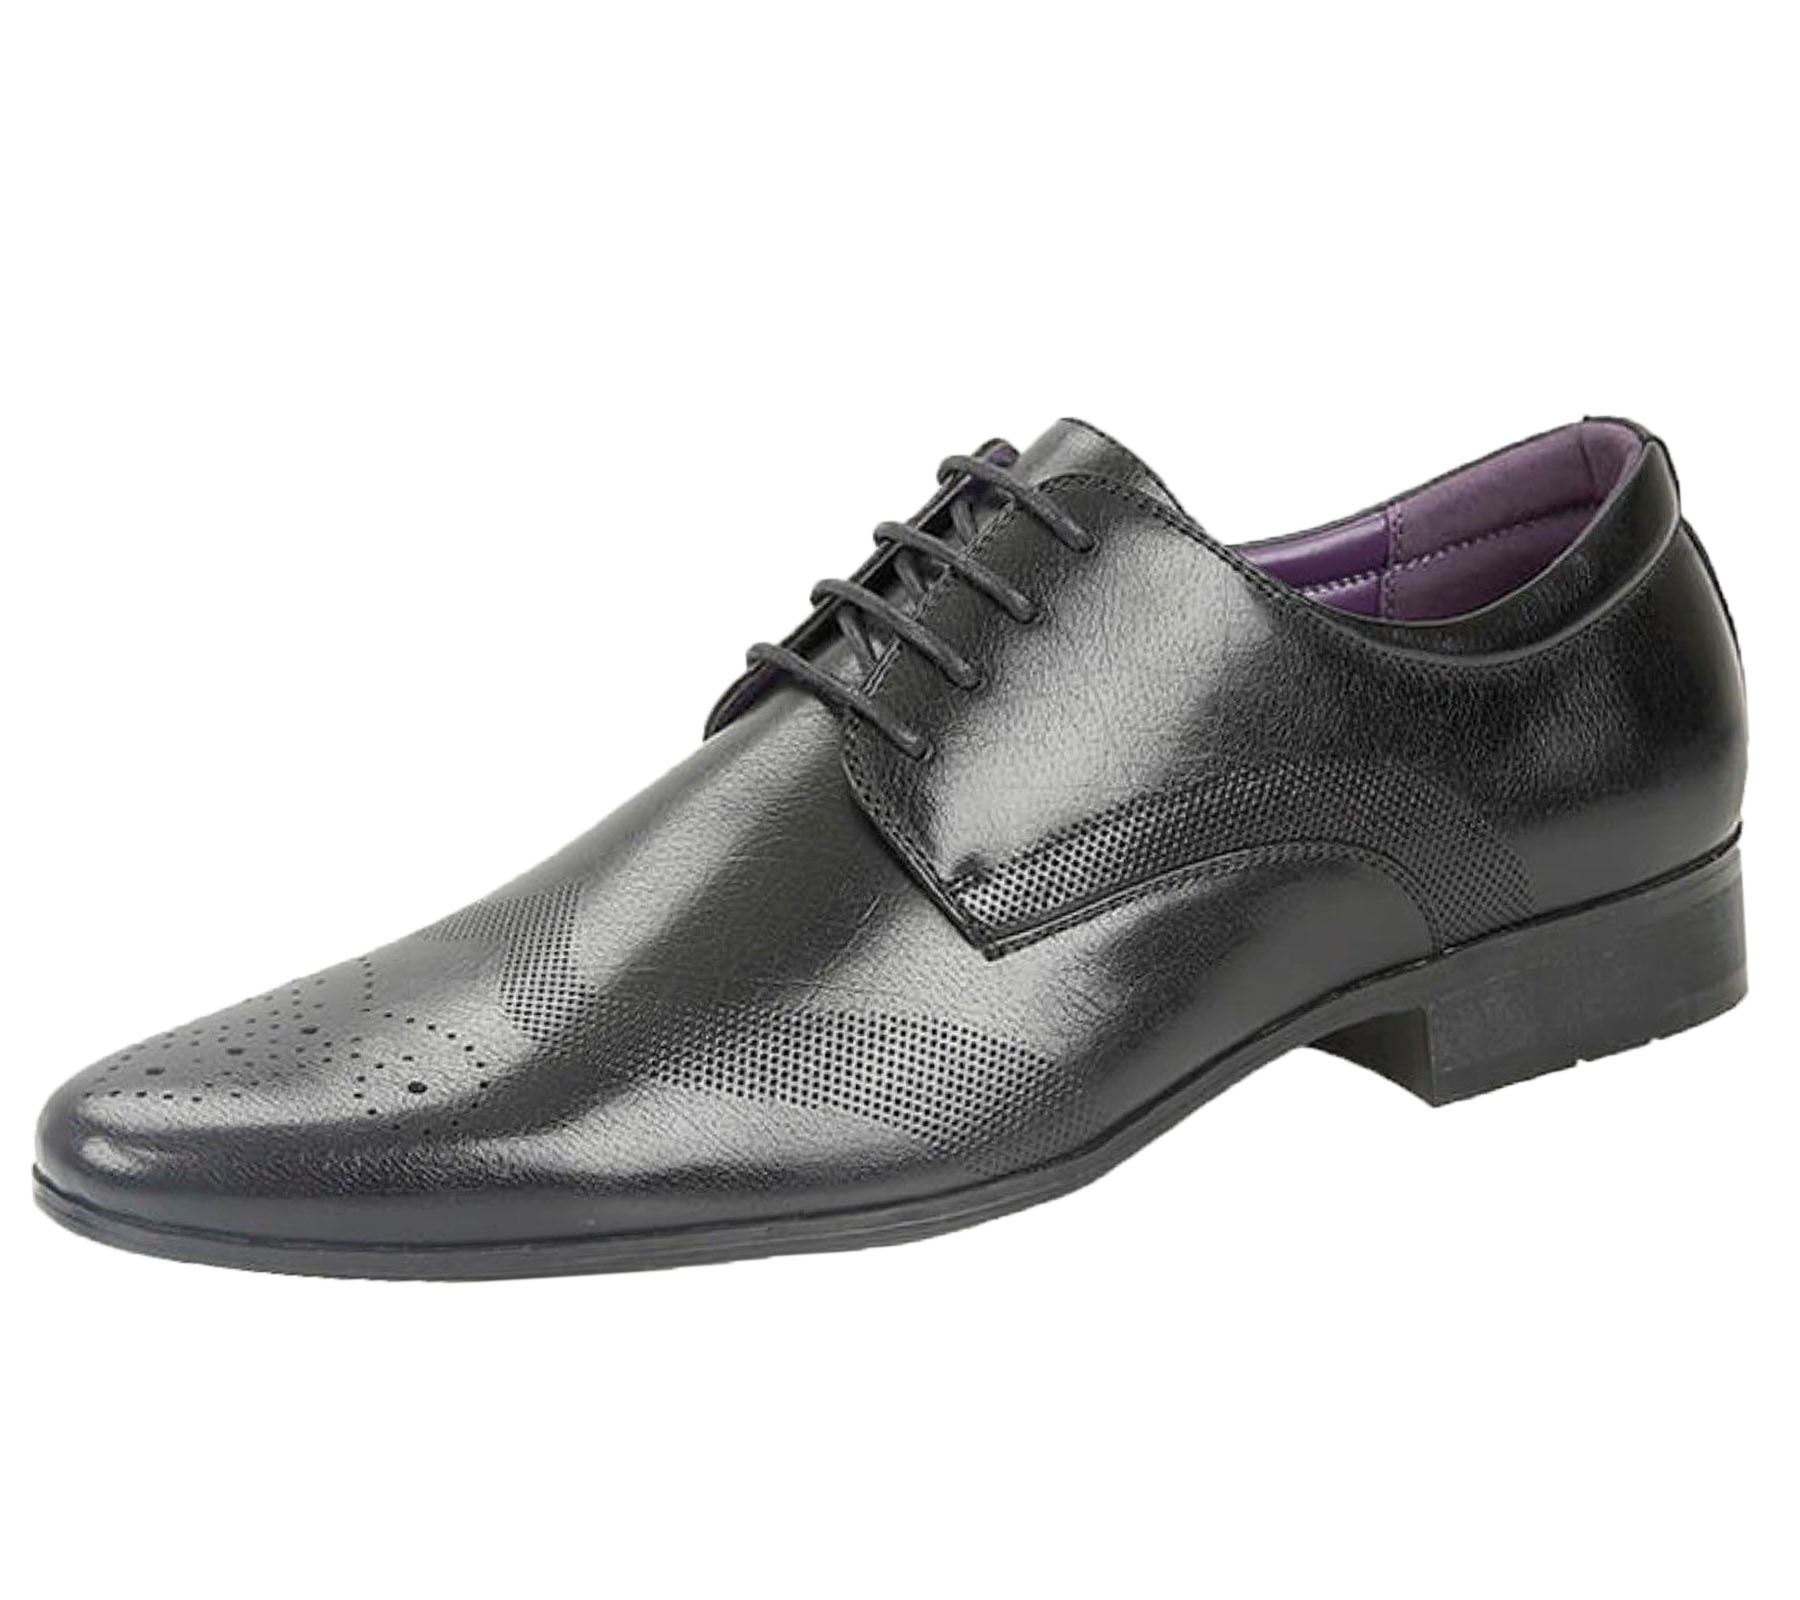 Mens-Brogues-Shoes-Office-Wedding-Formal-Smart-Dress-Shoes-New-Size miniatura 16